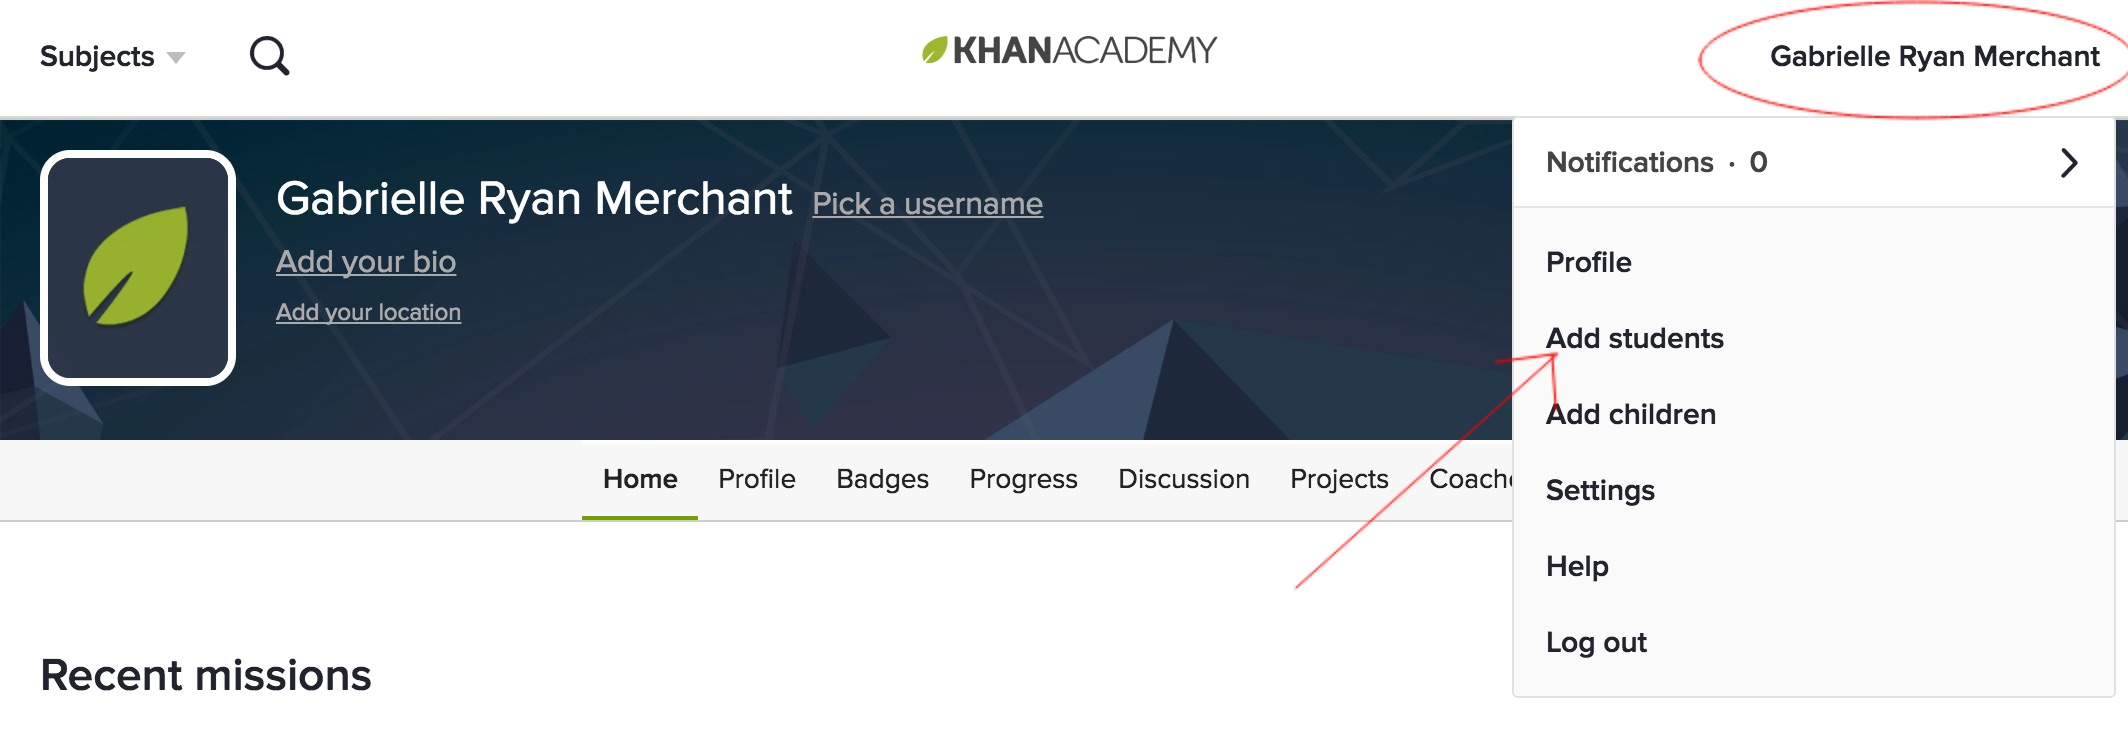 Khan Academy Screenshot showing how to add students with red circle to click on username and arrow pointing to add students in drop down menu